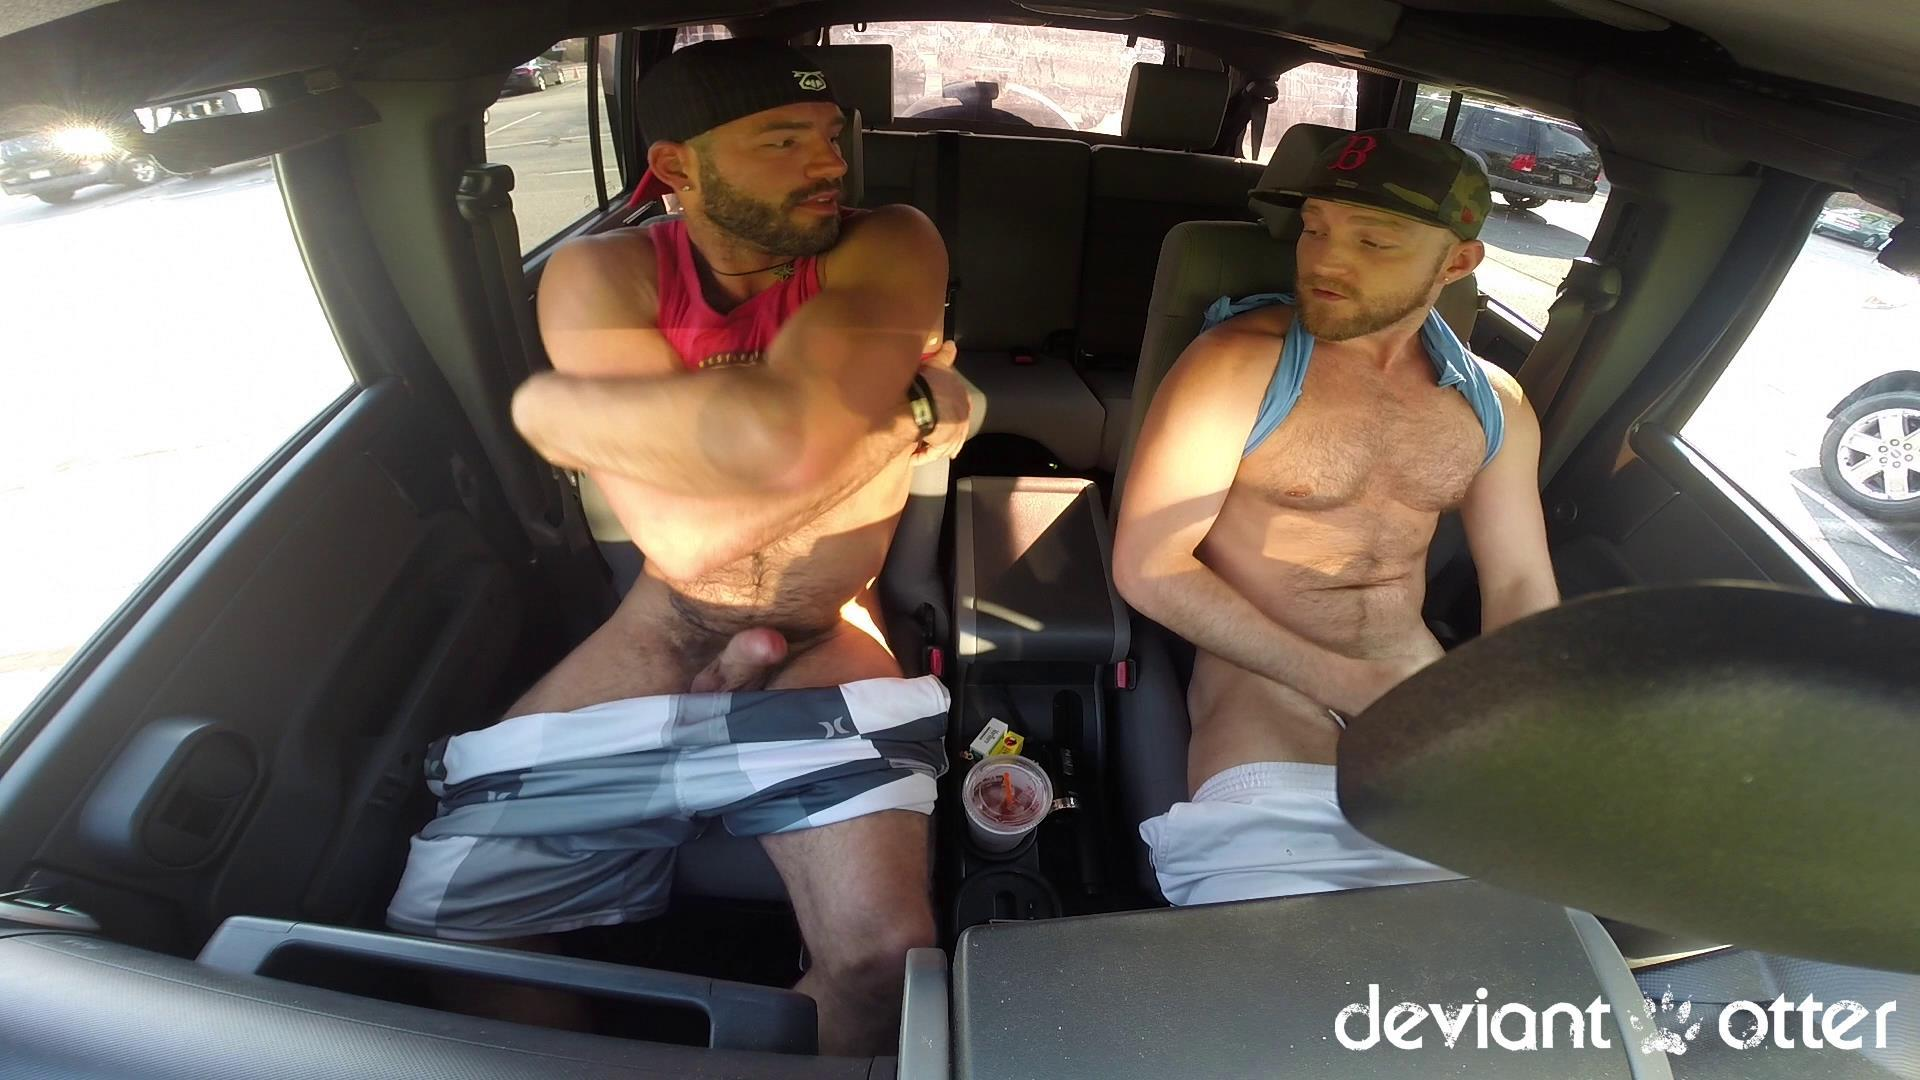 Deviant Otter Xavier Sucking Cock In Public Hairy Guys Amateur Gay Porn 09 Masculine Hairy Guys Sucking Each Others Cock In A Parking Lot